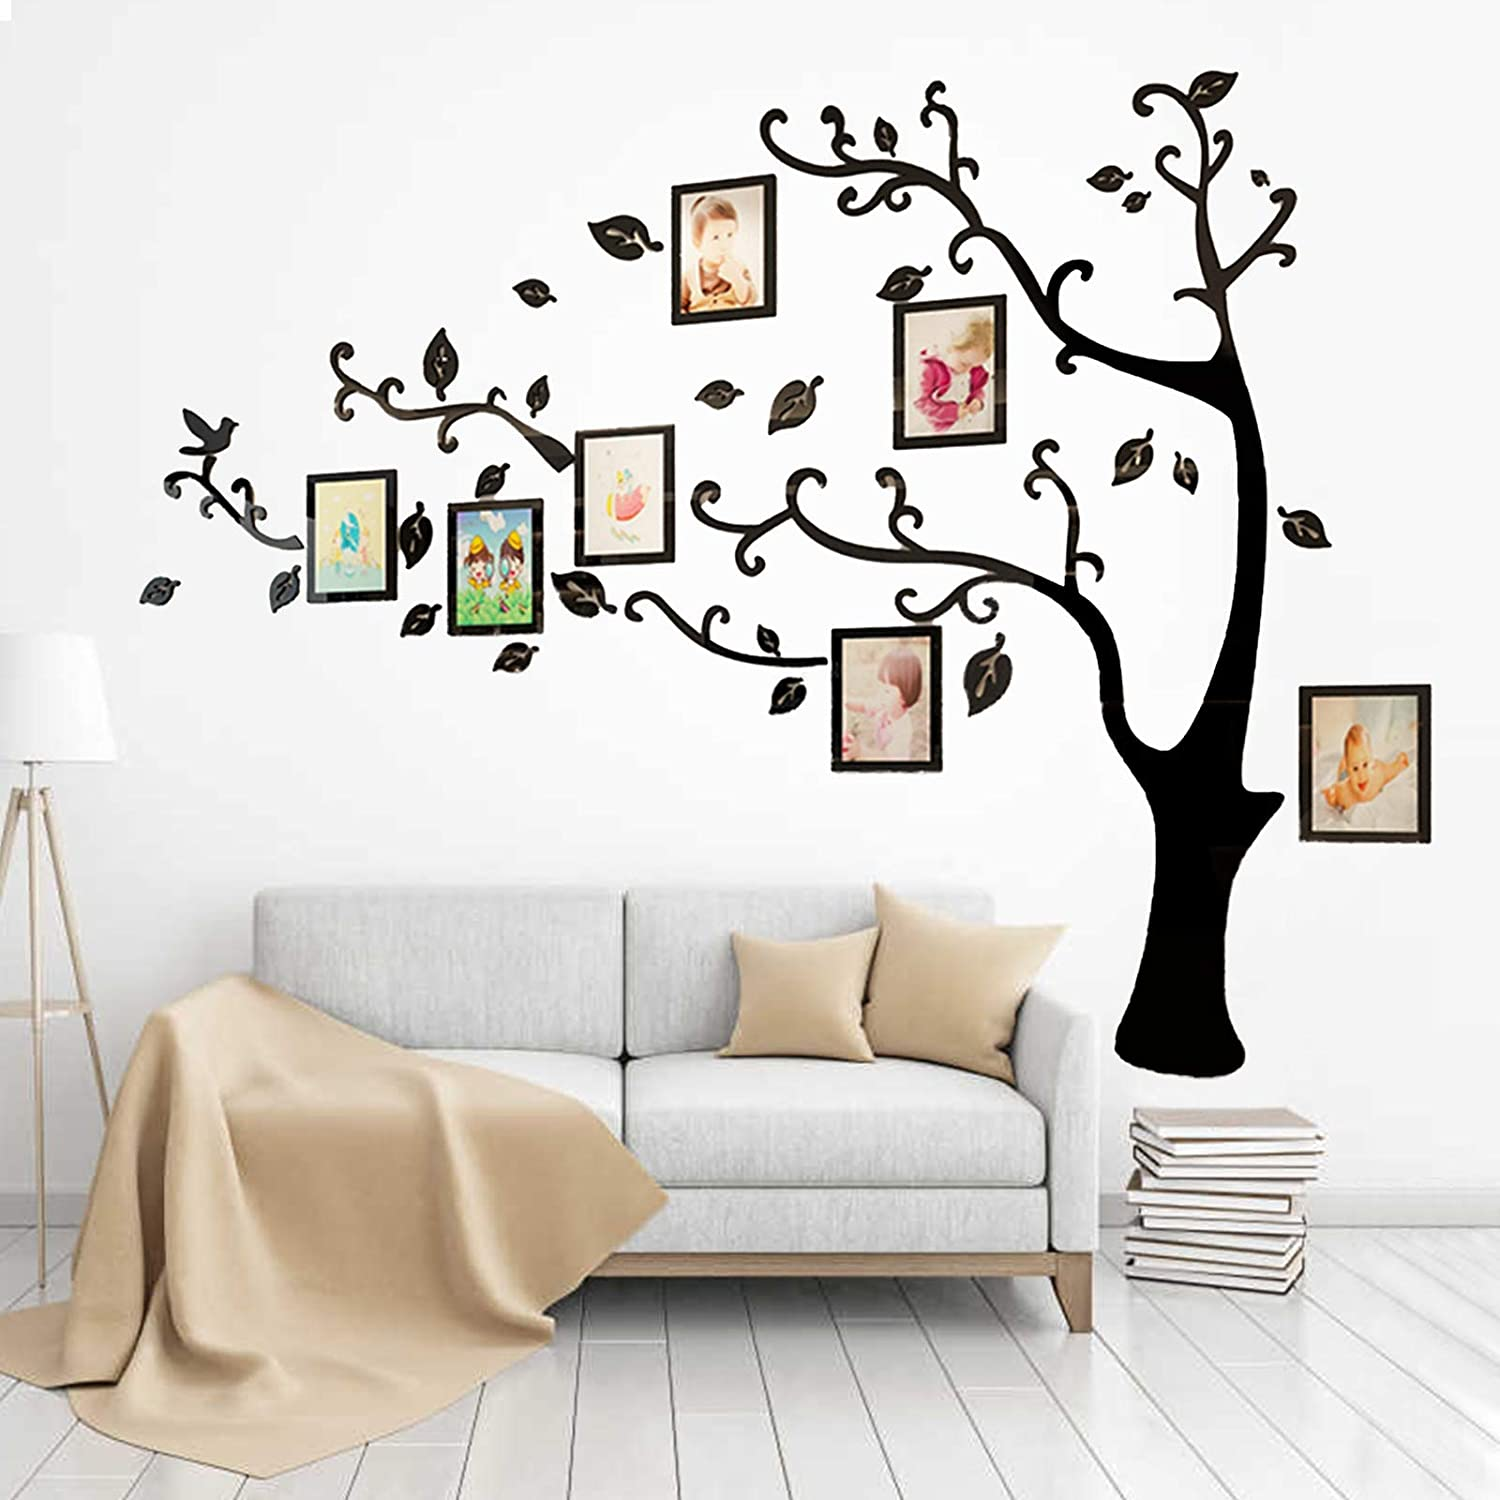 3D Tree Wall Stickers Frames Family Tree Wall Decal DIY Photo Gallery Frame Stickers Crystal Acrylic Mural Decor Sticker Home Art Decor for Living Room Sofa TV Art Wall Background (XL, Black Right)